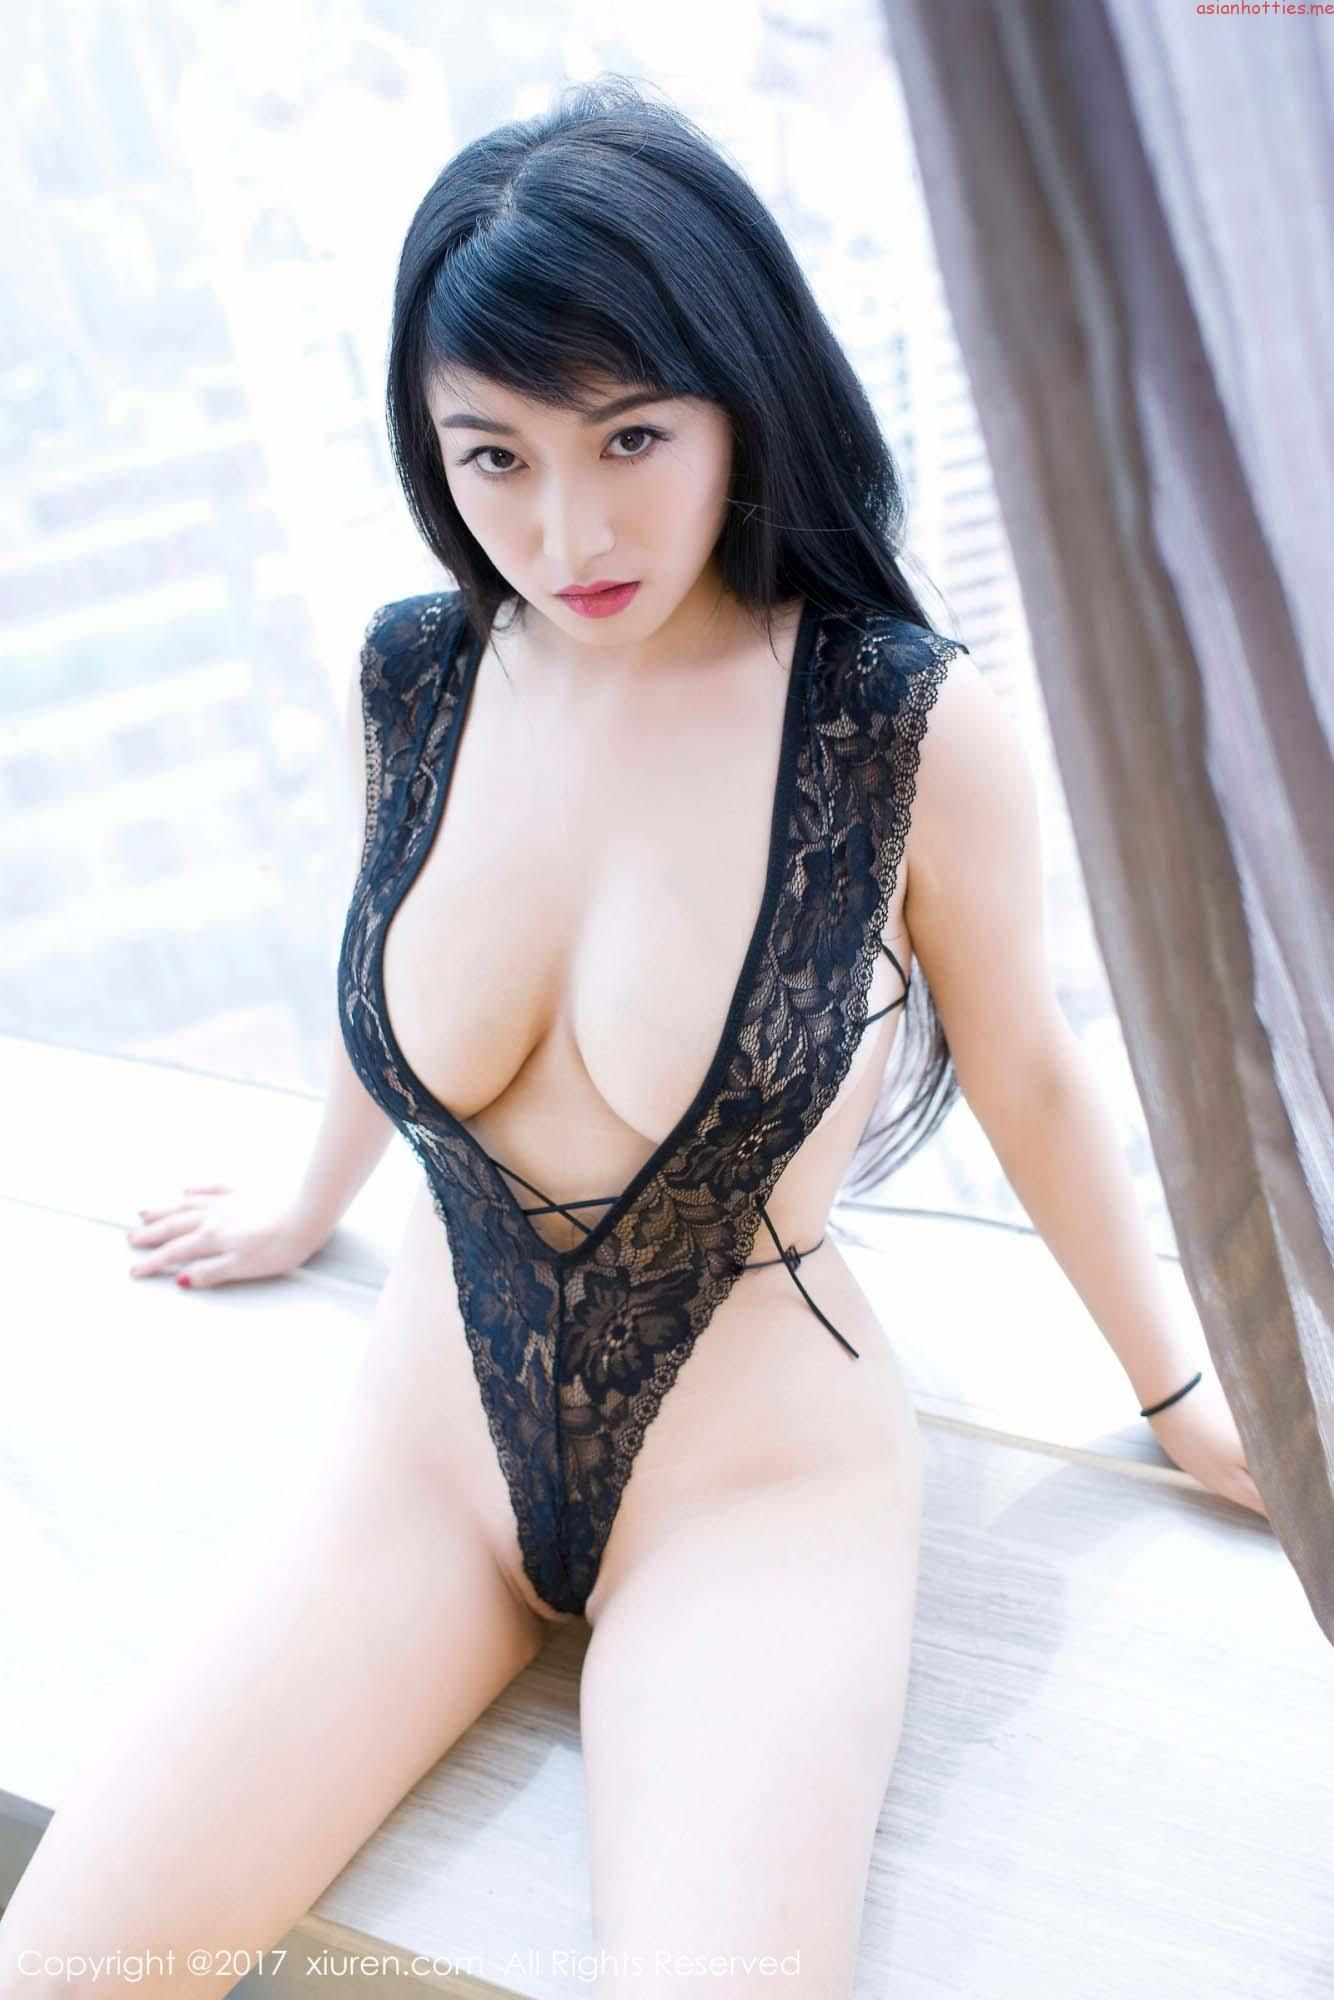 boobs Xiuren nice big